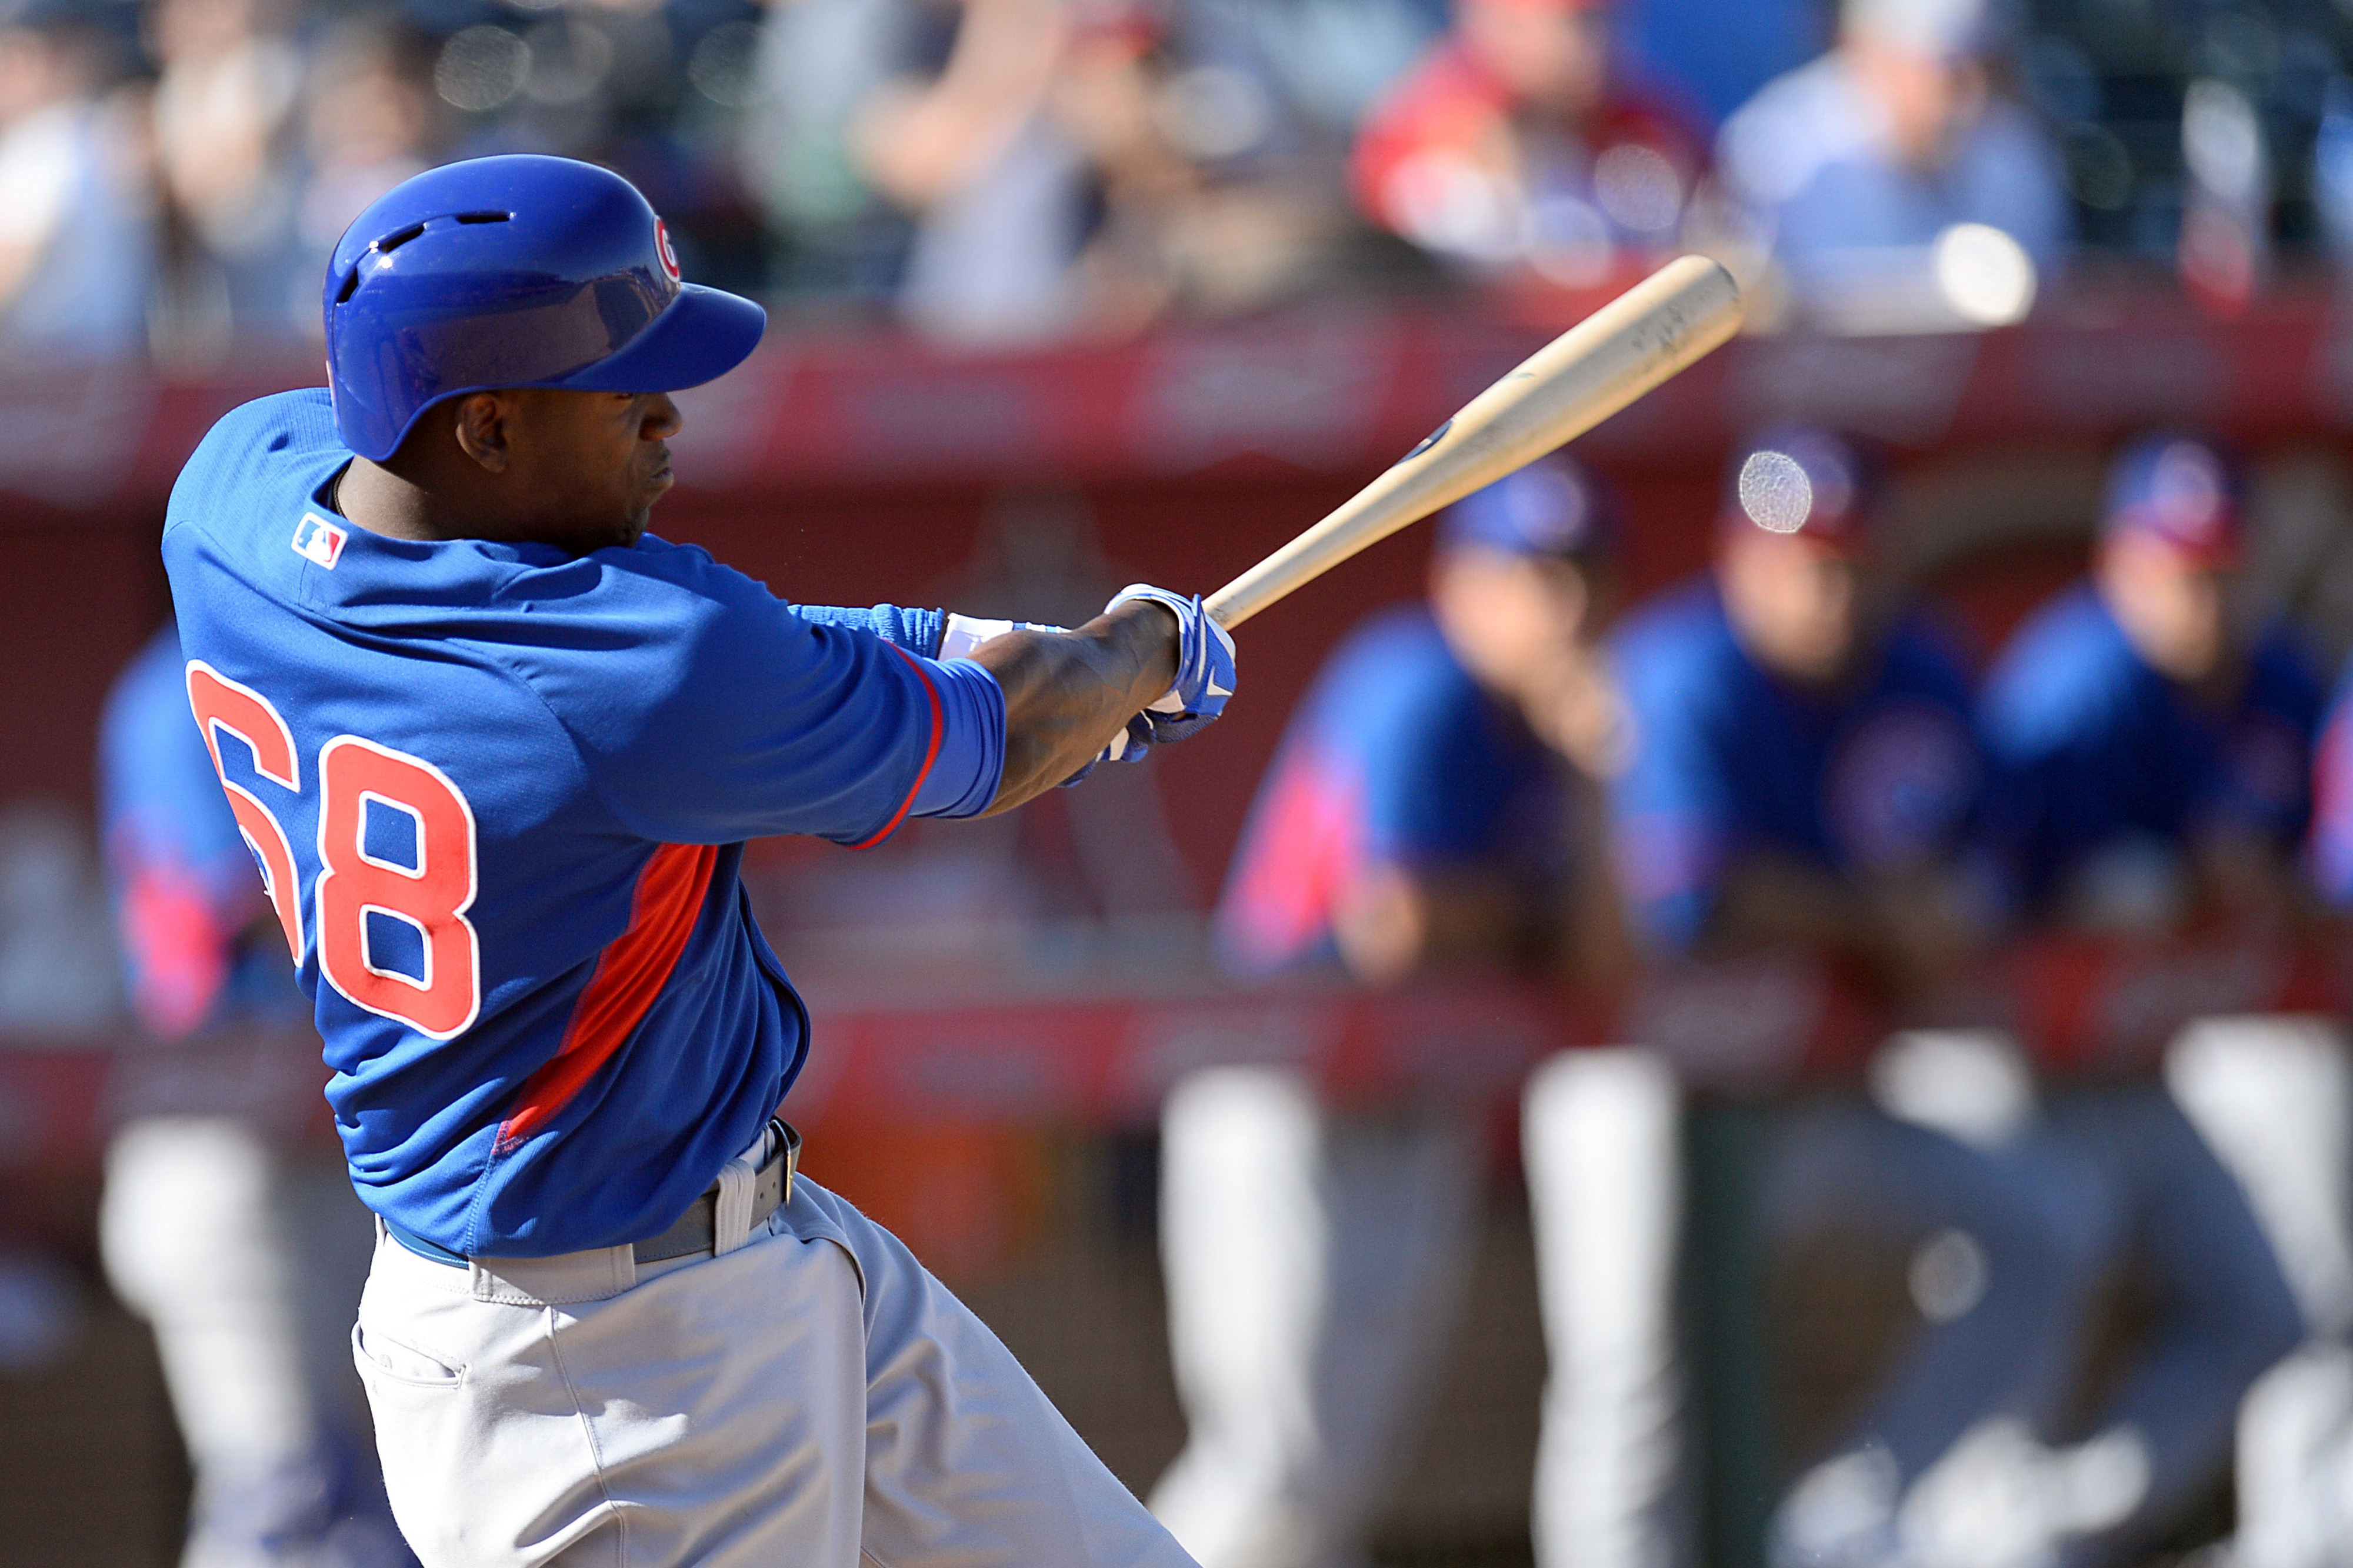 Jorge Soler homers for Cubs in first major league AB